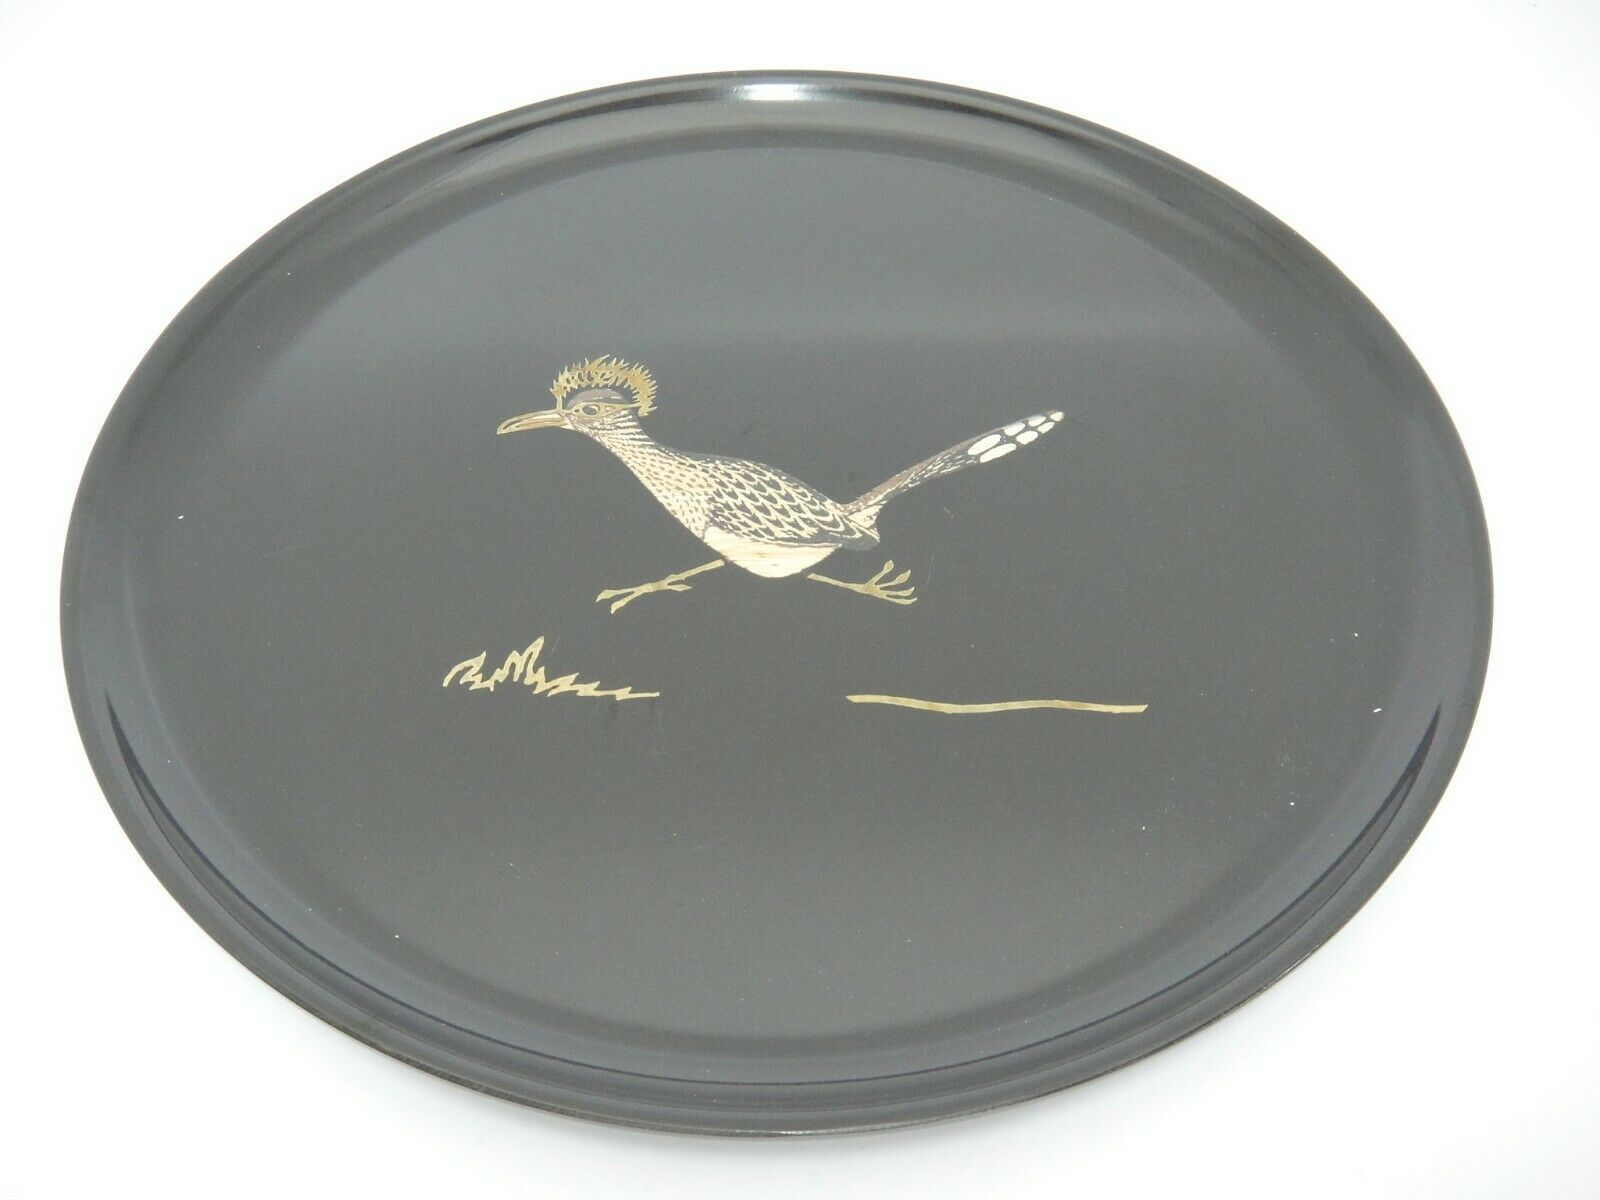 "Primary image for Couroc of Monterey Round 10.5"" Tray With Inlaid Roadrunner Mid Century"